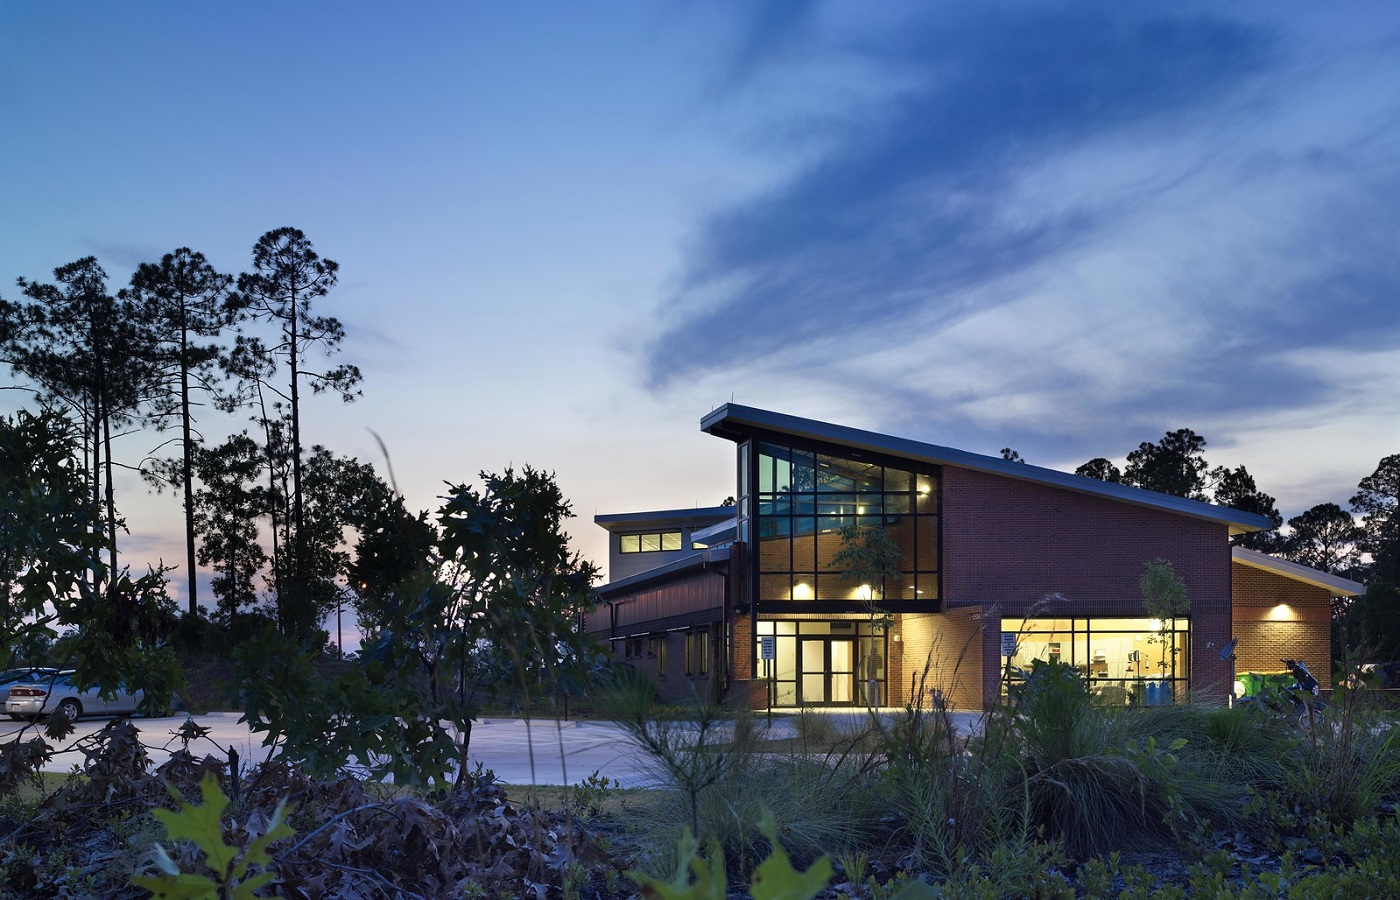 LEED Platinum certified building. Photo from U.S. Army Corps of Engineers via Flickr.